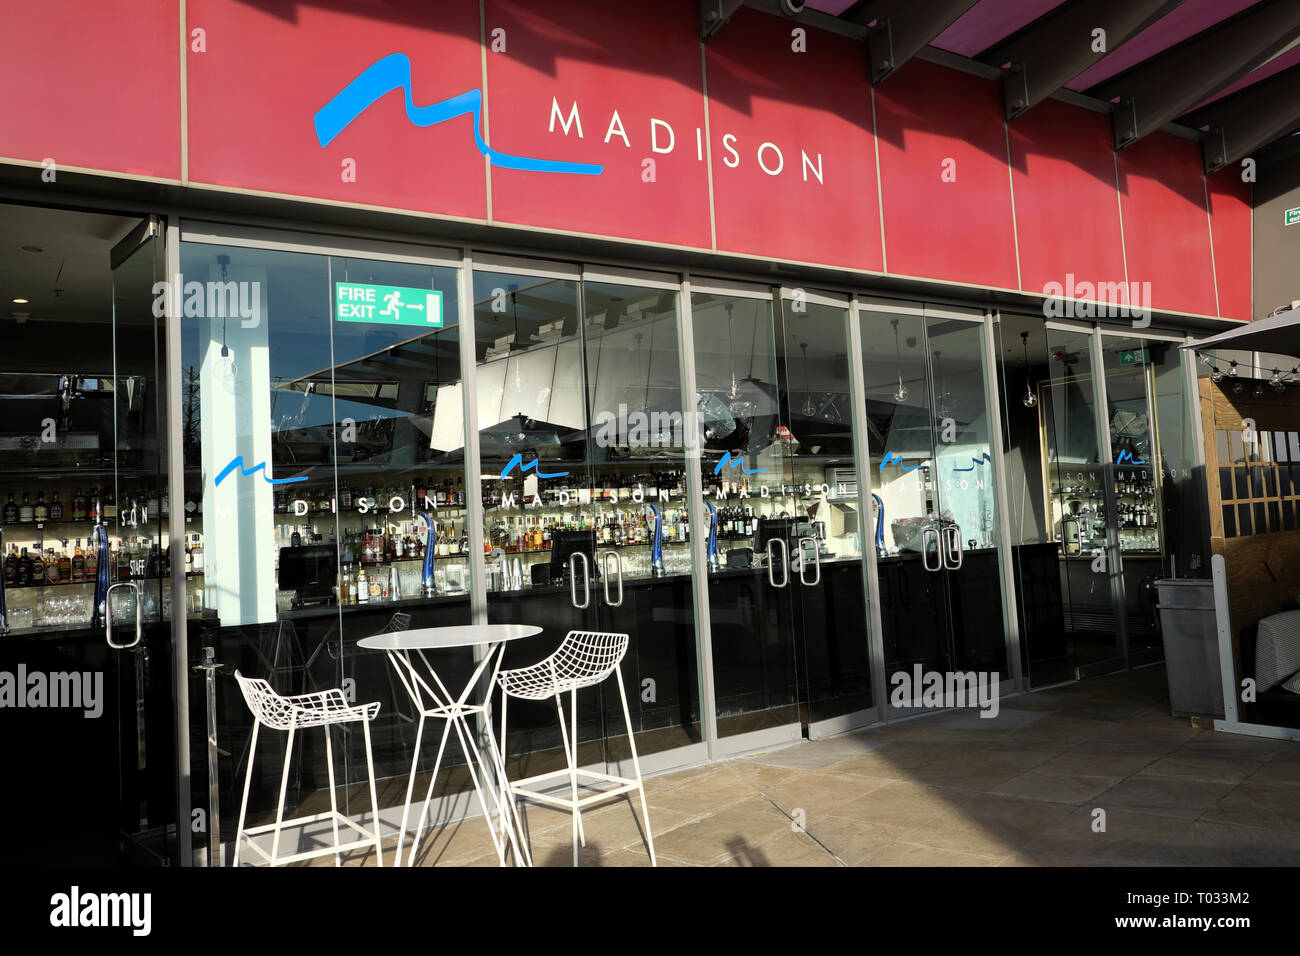 Exterior view of Madison bar and tapas restaurant at One New Change rooftop terrace in the City of London EC4 England UK  KATHY DEWITT - Stock Image